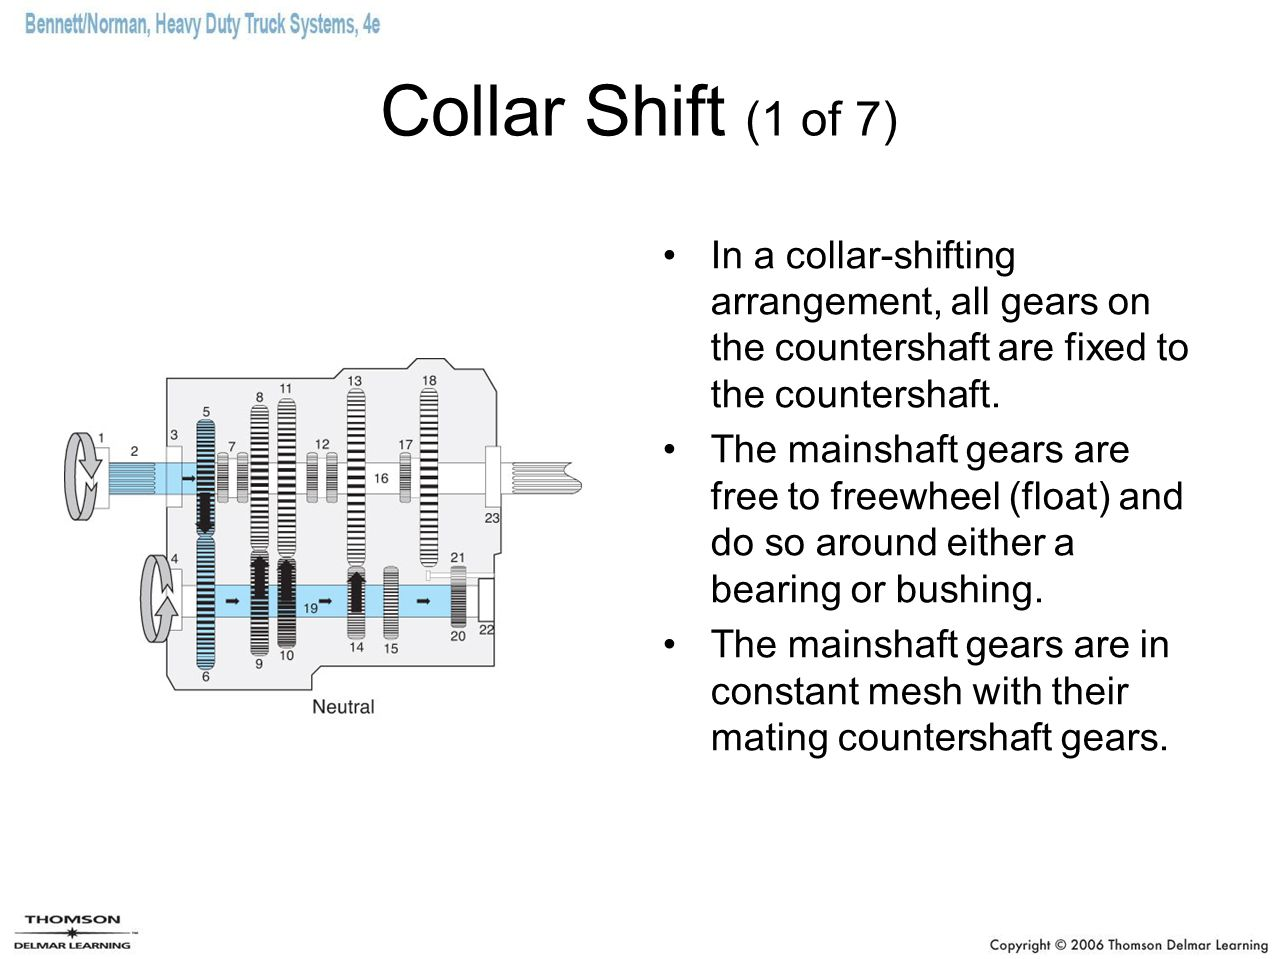 Collar Shift (1 of 7) In a collar-shifting arrangement, all gears on the countershaft are fixed to the countershaft. The mainshaft gears are free to f